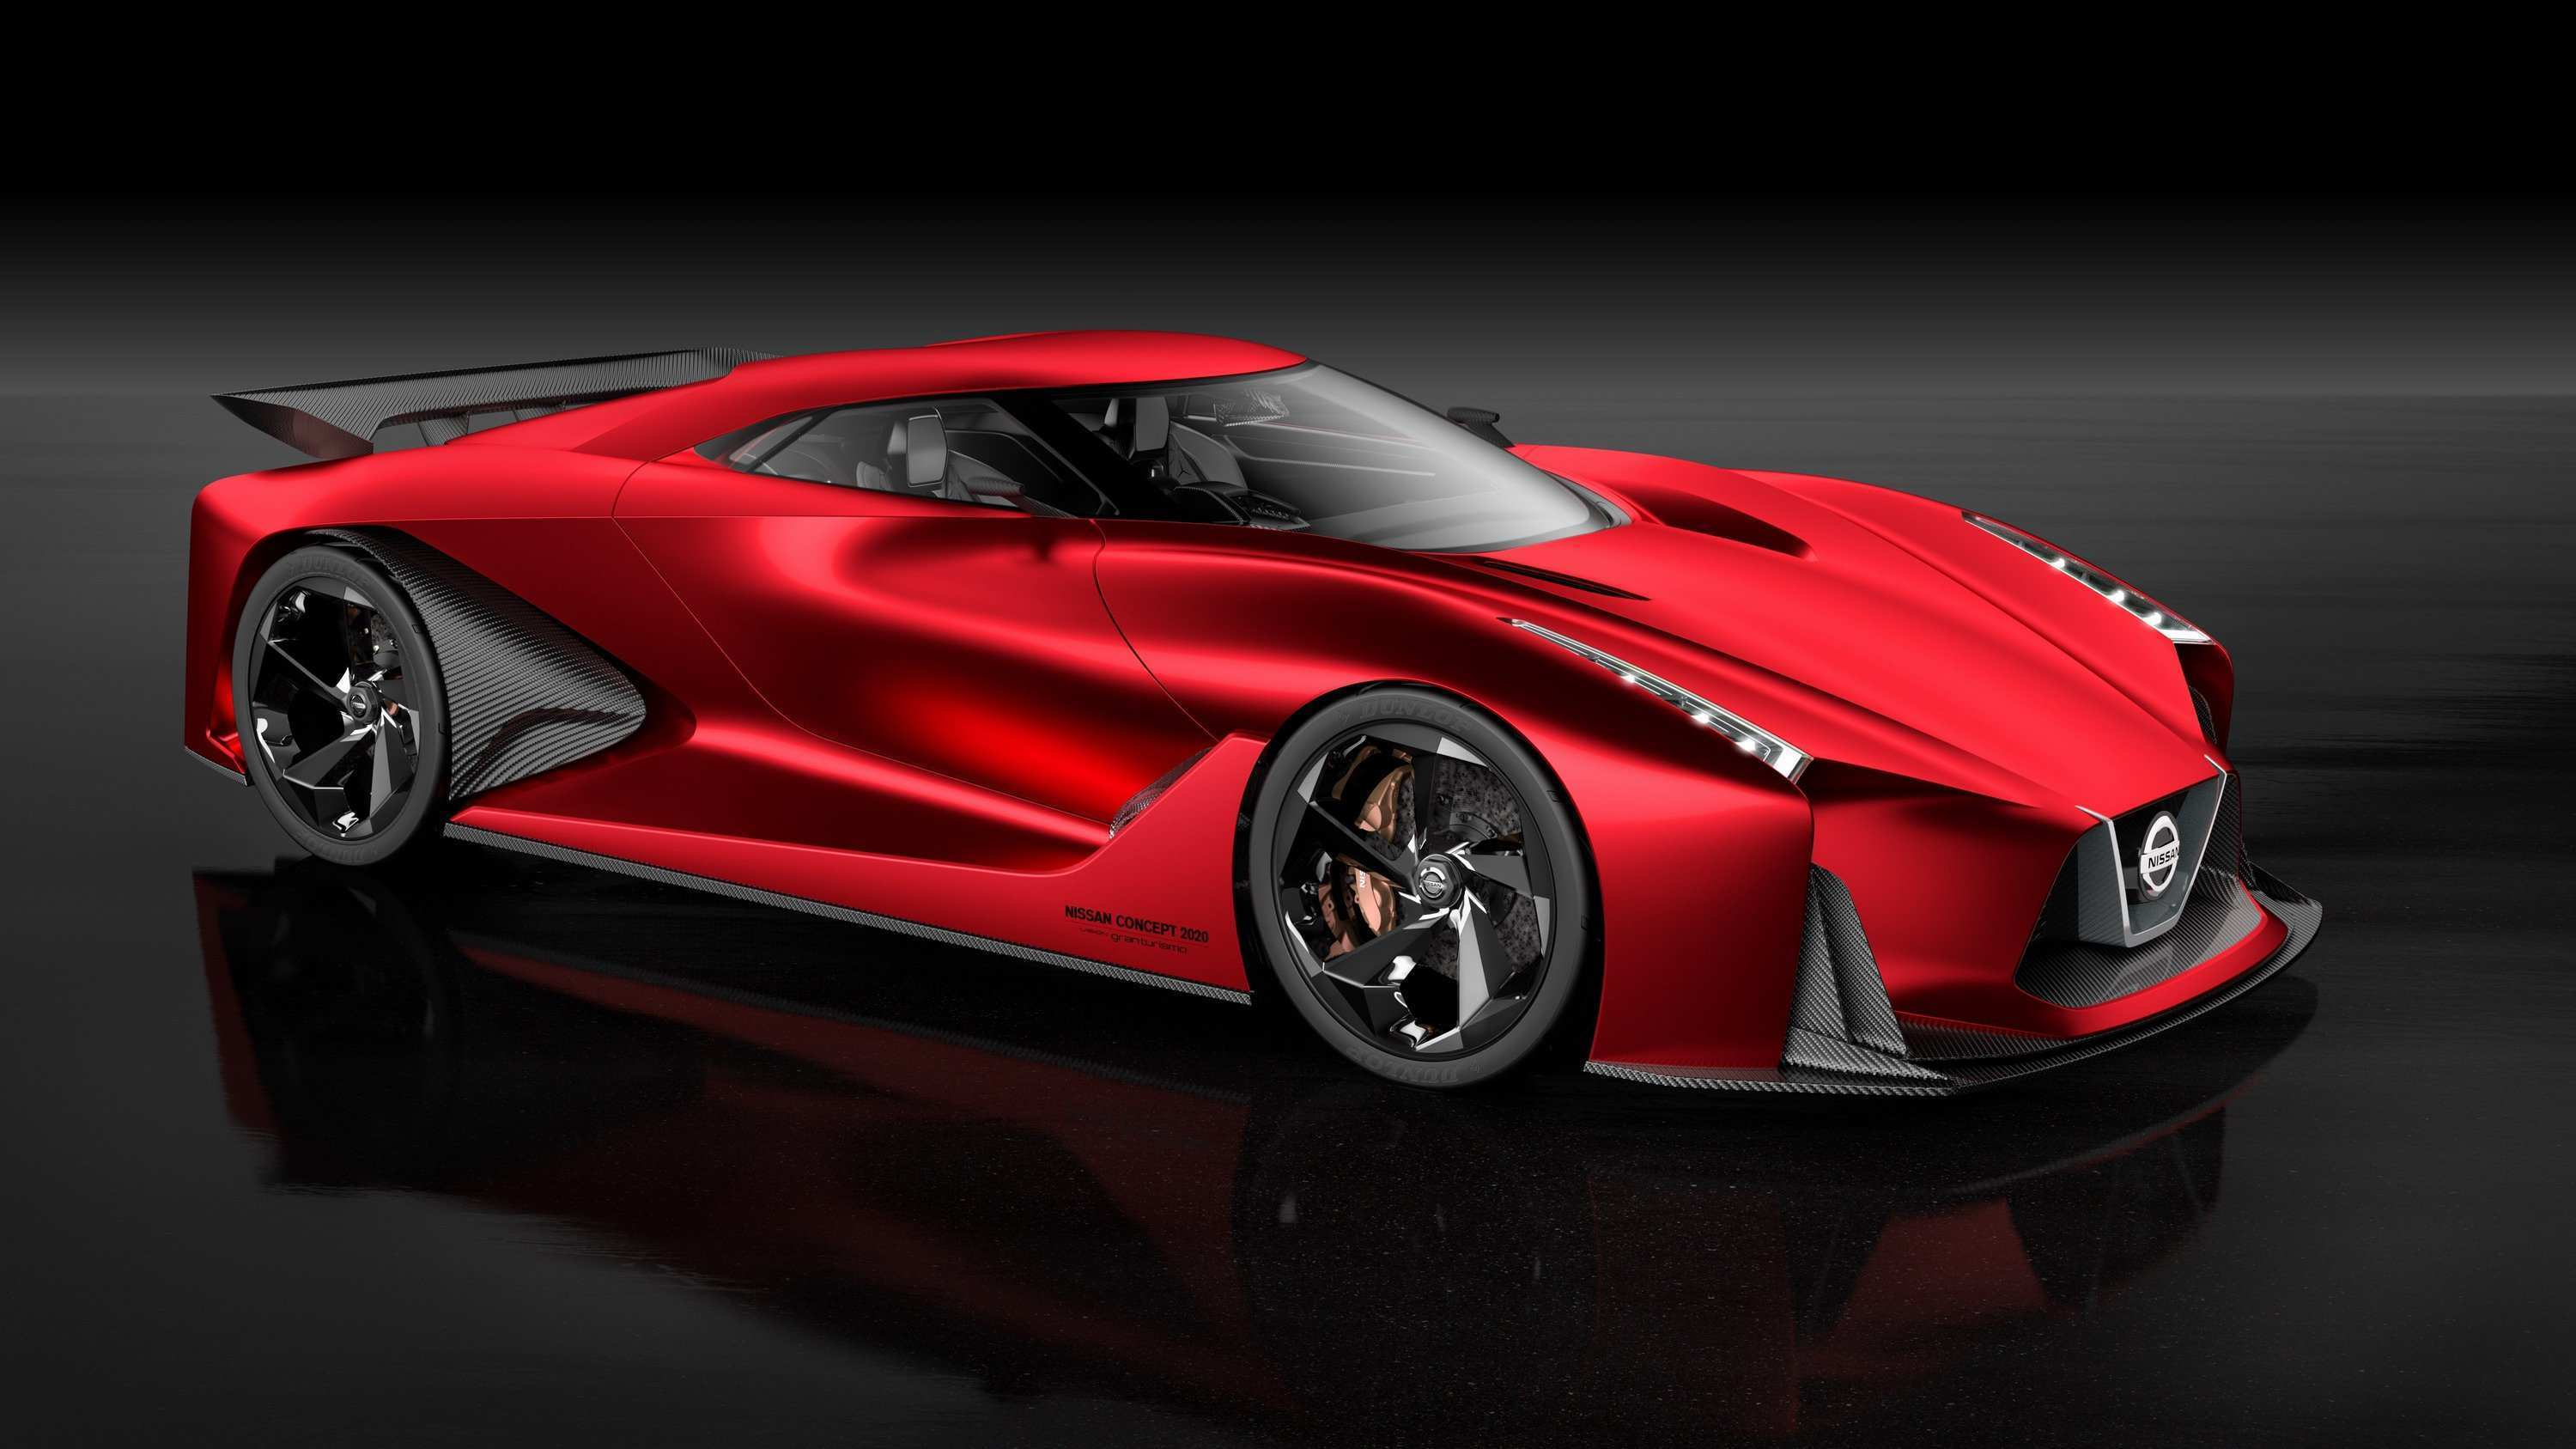 40 The 2020 Nissan GT R Picture with 2020 Nissan GT R